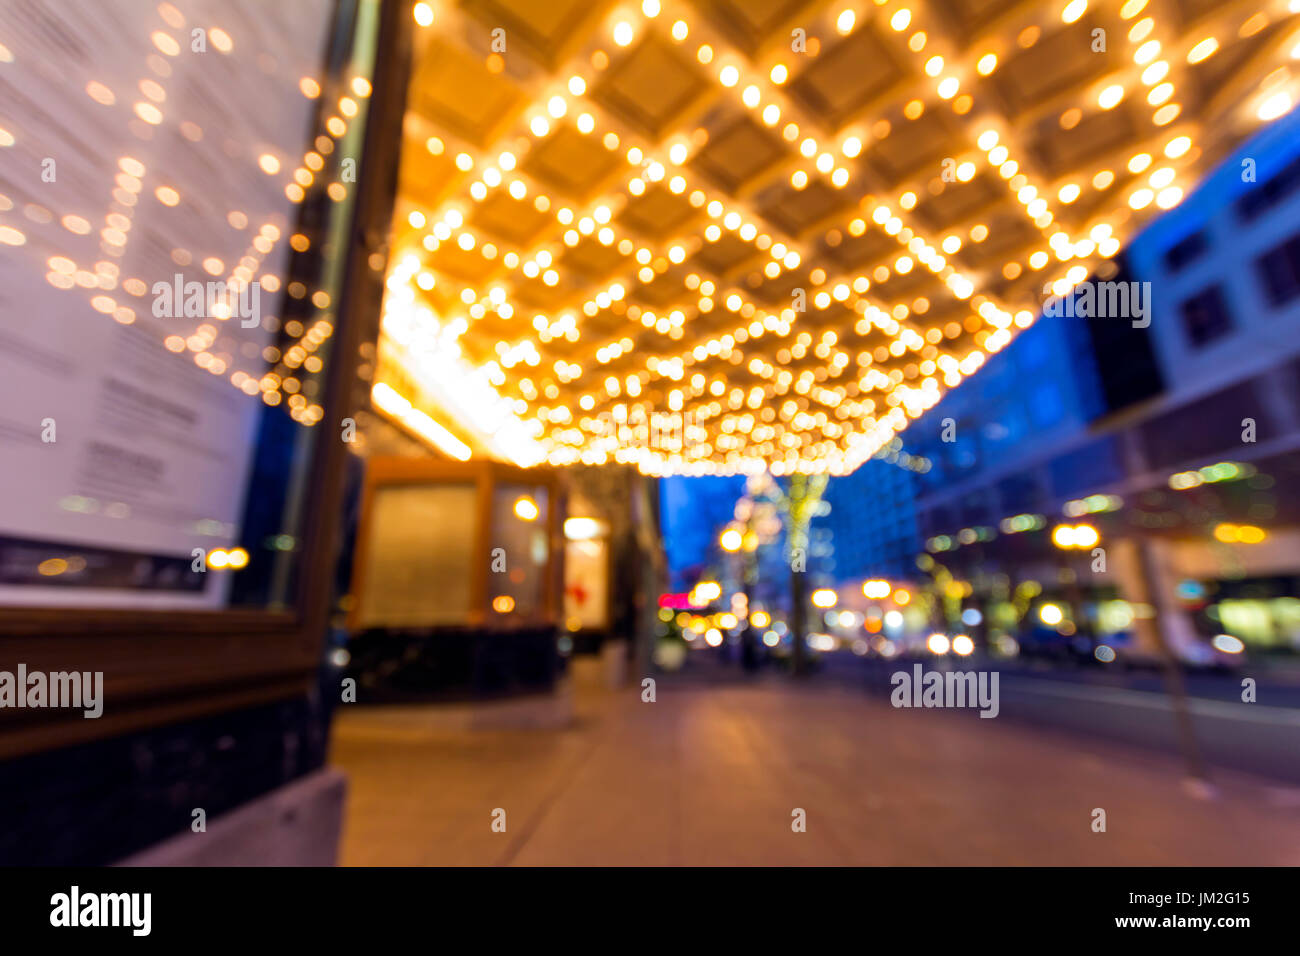 Portland Oregon Downtown Entertainment and Shopping District at Evening Blue Hour with Marquee and Traffic Lights Blurred Bokeh Background Stock Photo